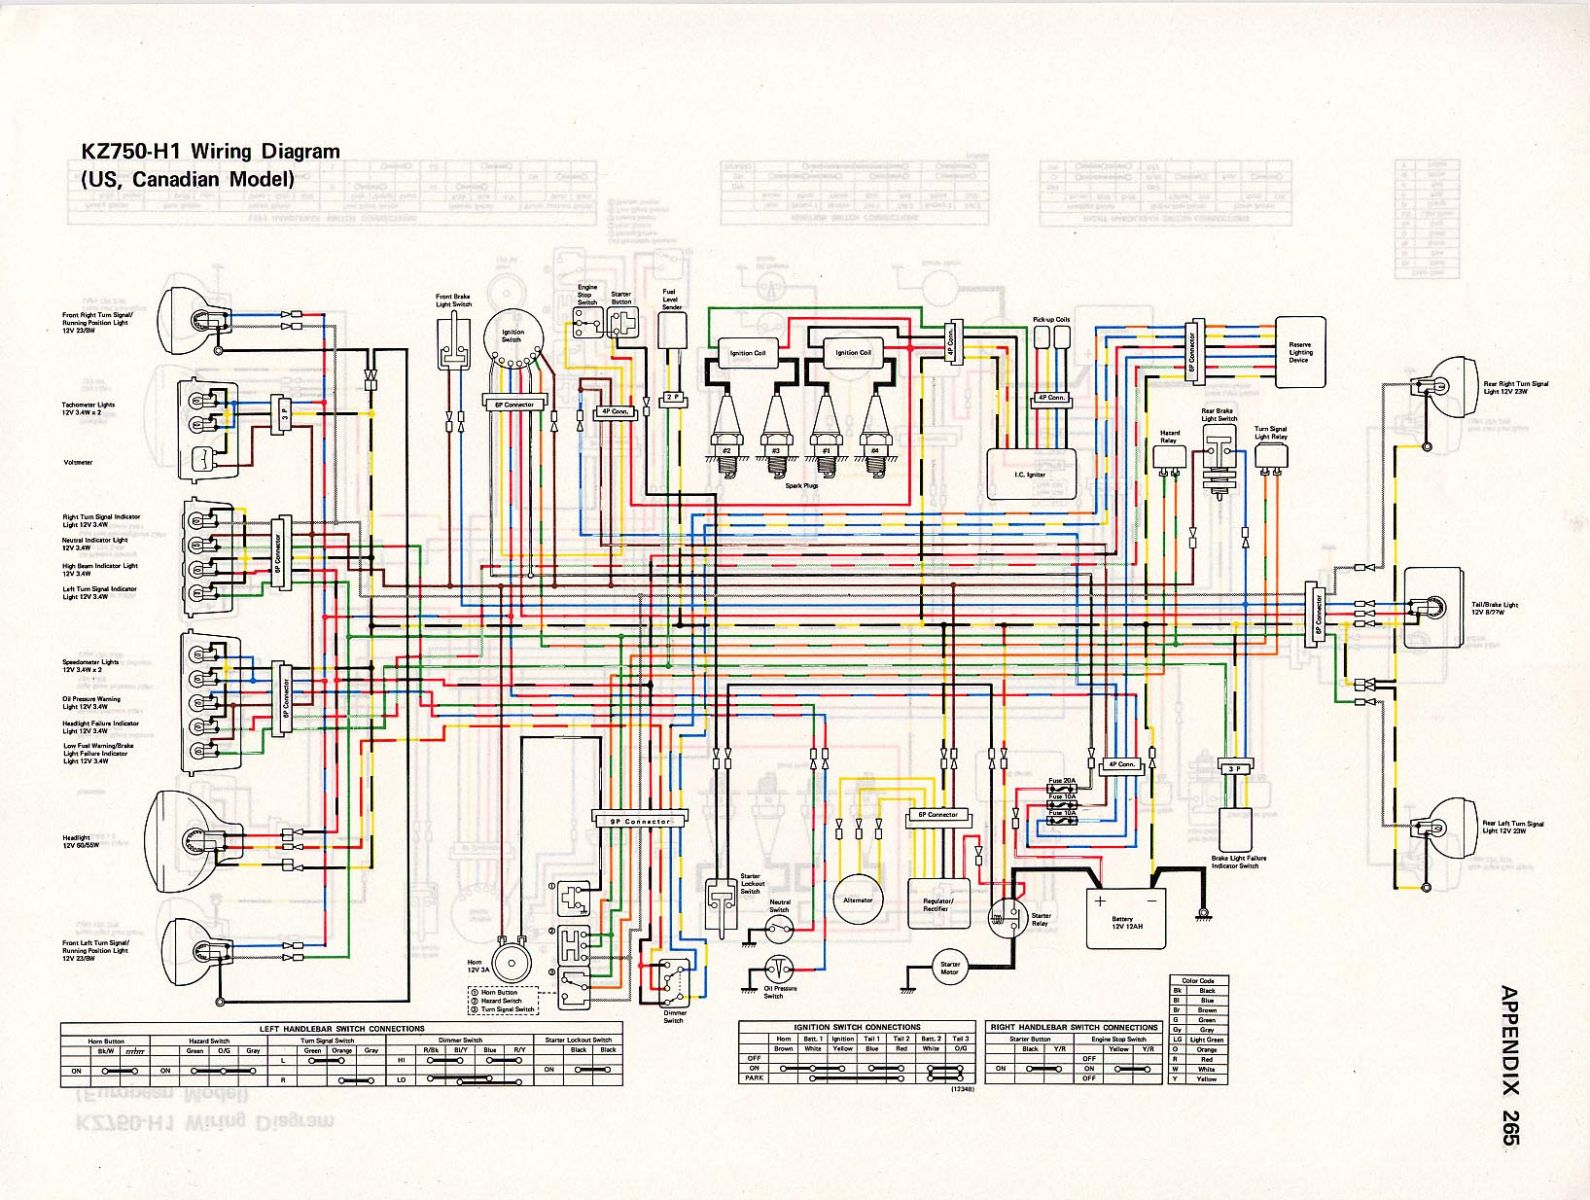 1980 kawasaki ke100 wiring diagram auto electrical wiring diagram rh  harvard edu co uk iico me